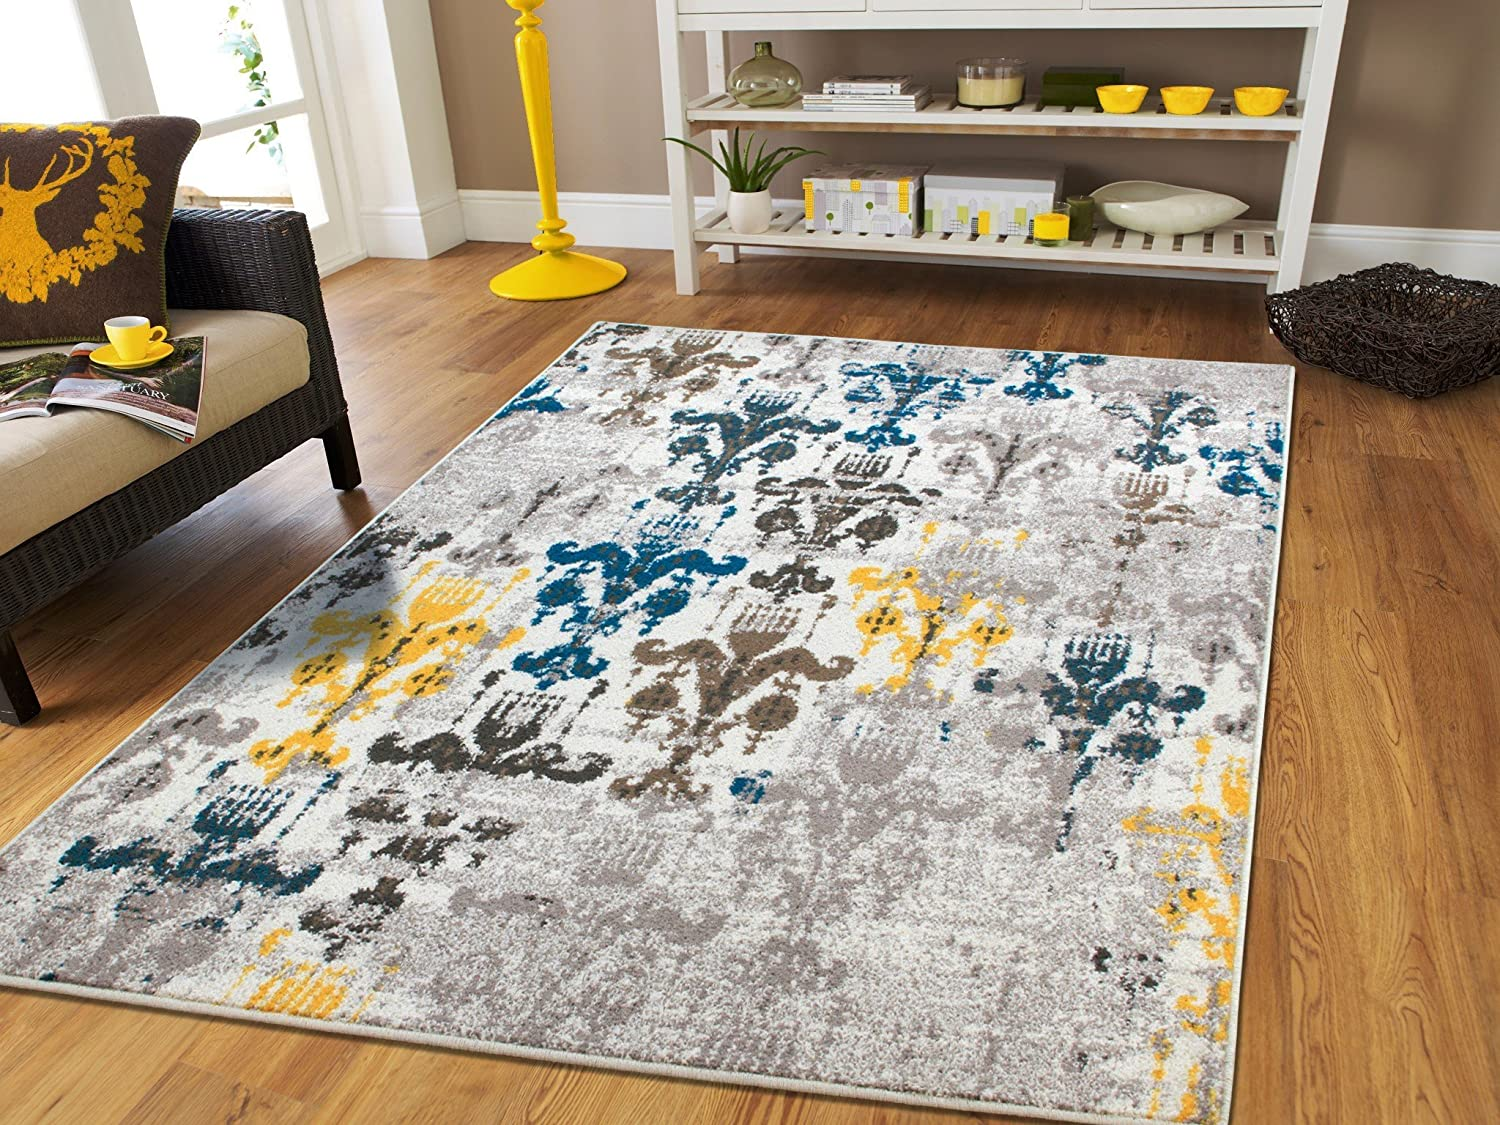 Amazon New Fashion Area Rugs Modern Flowers Yellow Beige Cream Grey 2x3 Western Faded Style Abstract Small For Bedrooms 2x4 Blue